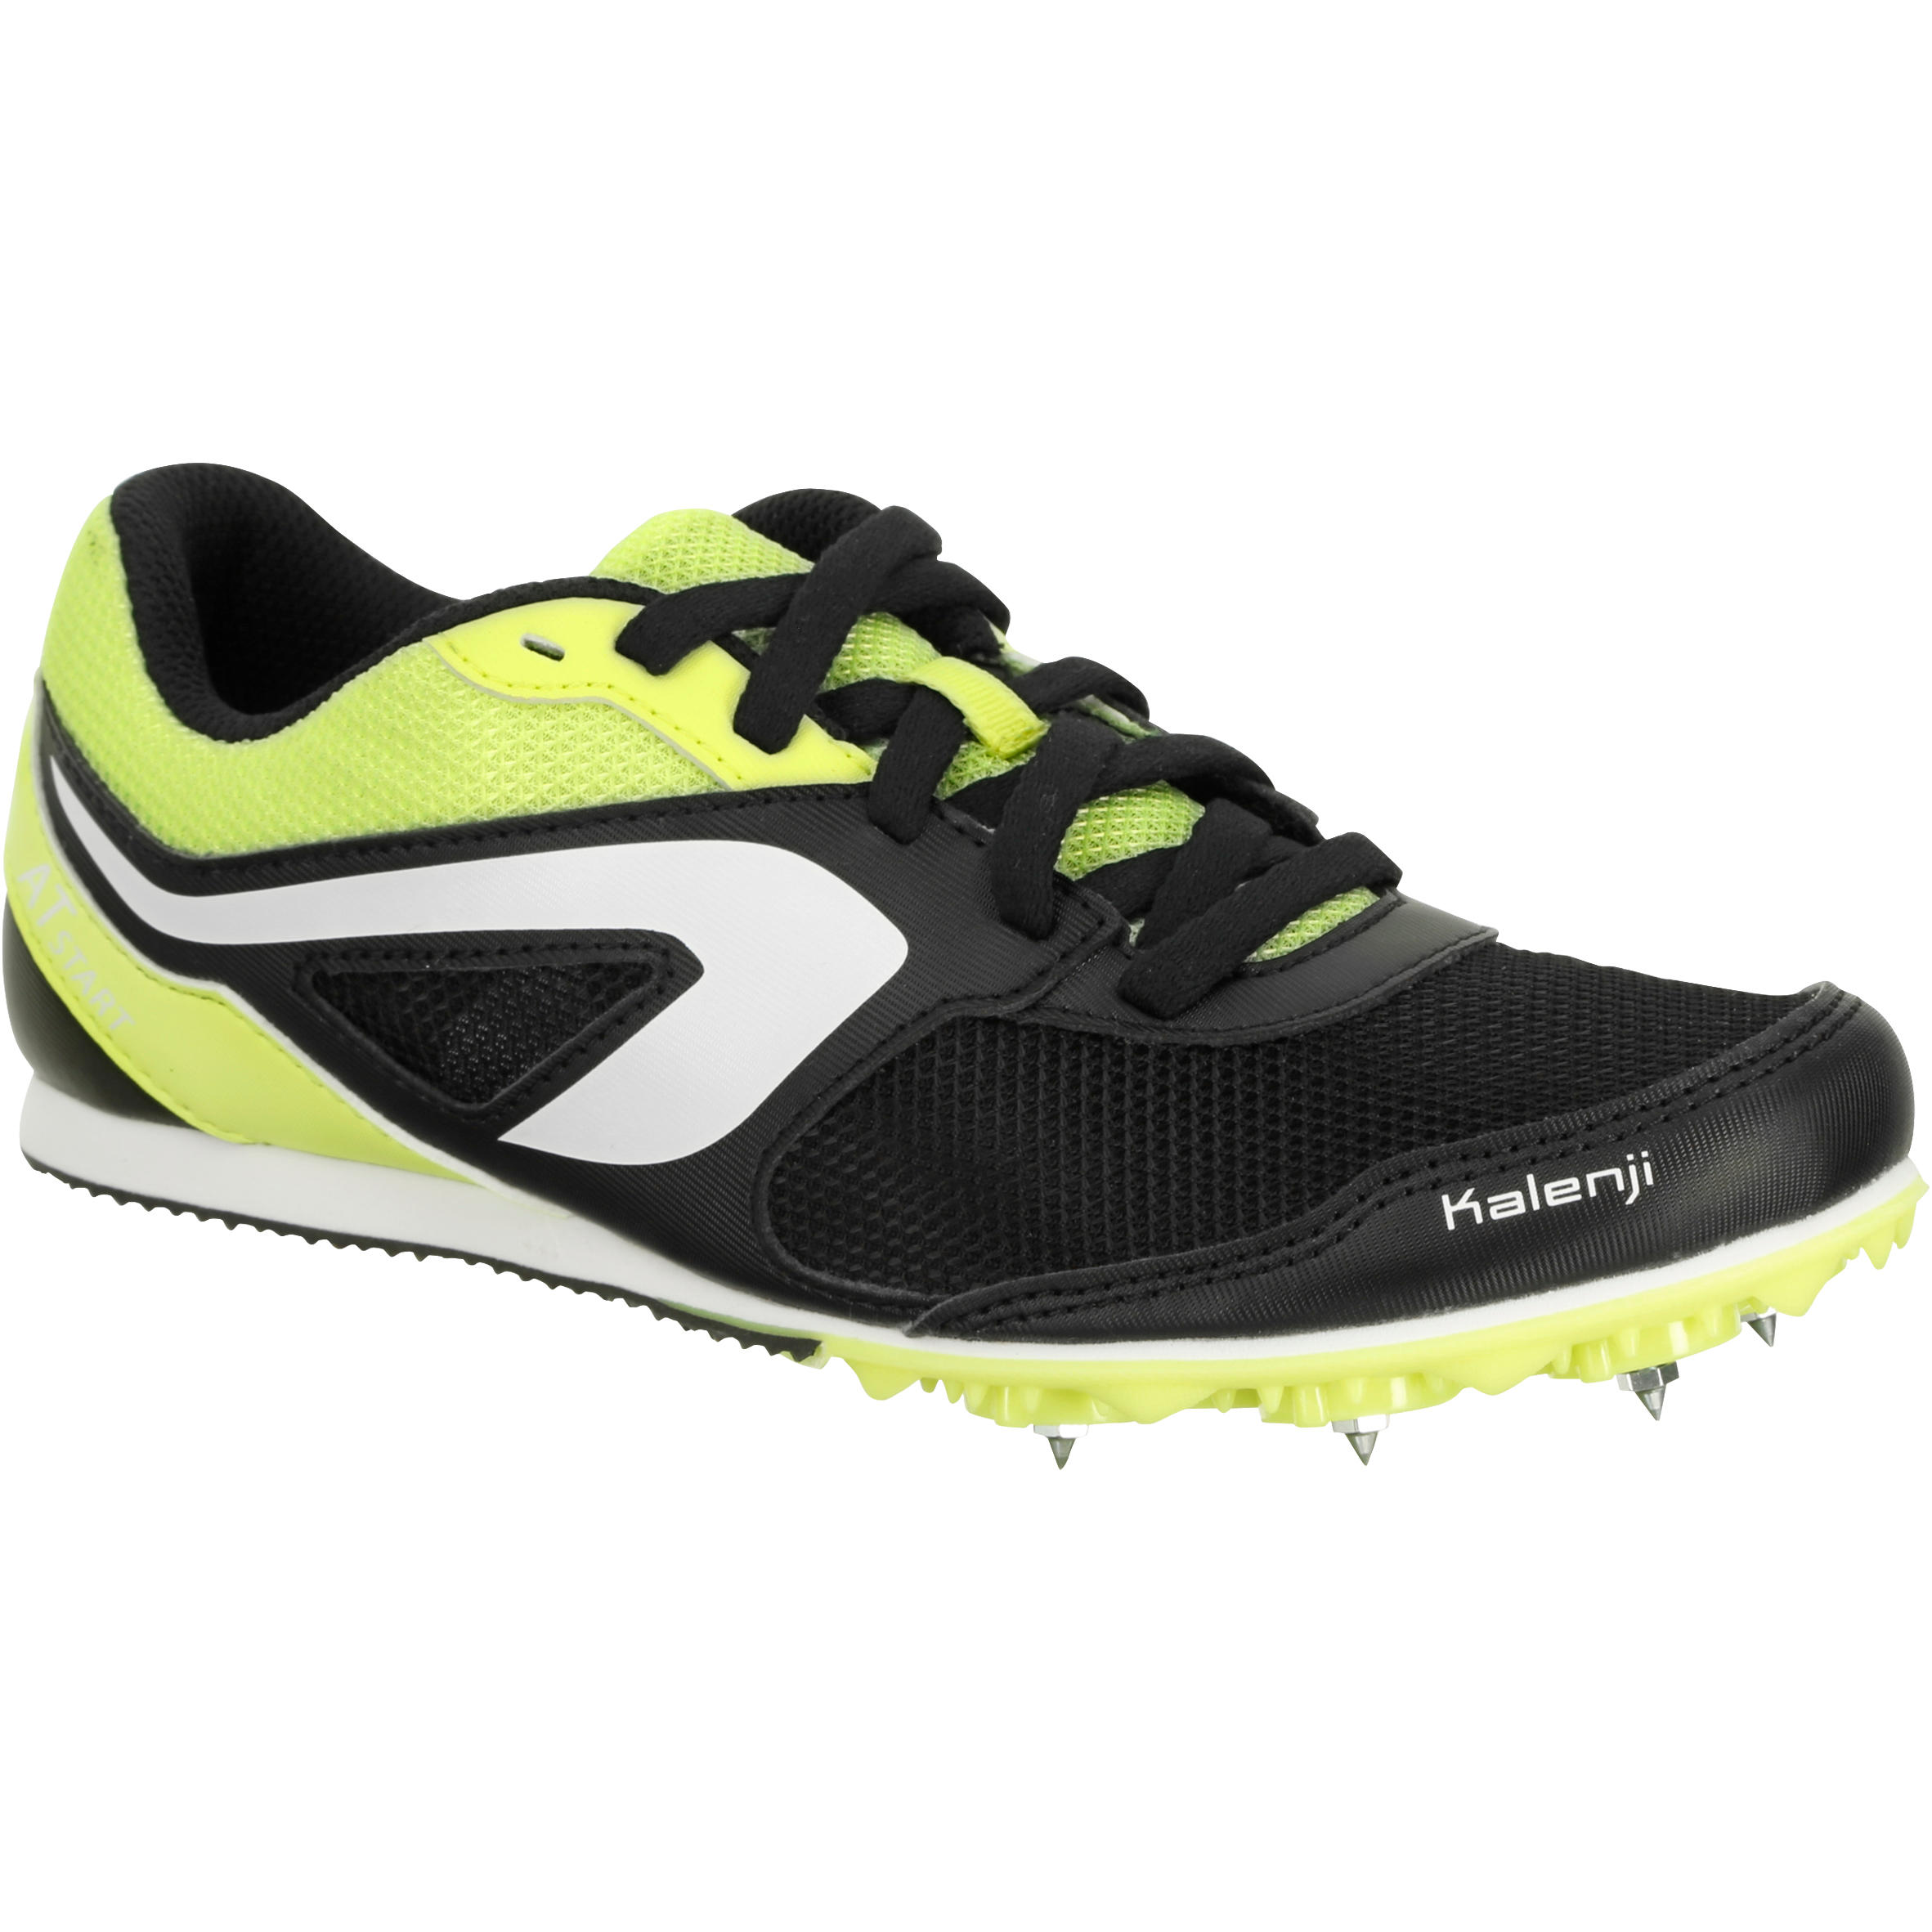 ATHLETICS SPIKED SHOES MULTI-PURPOSE